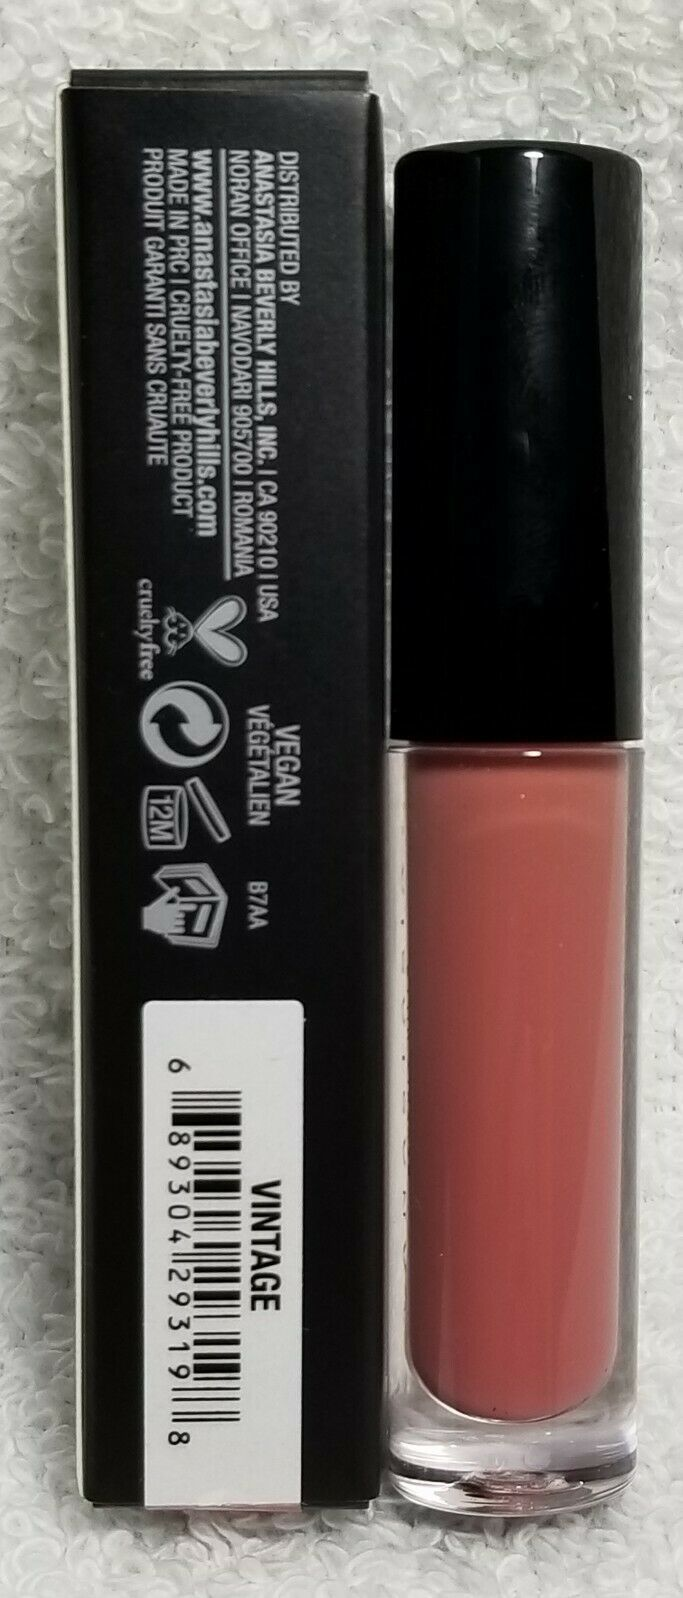 Anastasia VINTAGE Lip Gloss Opaque High Shine Vanilla Scented Lip .07 oz/2g New